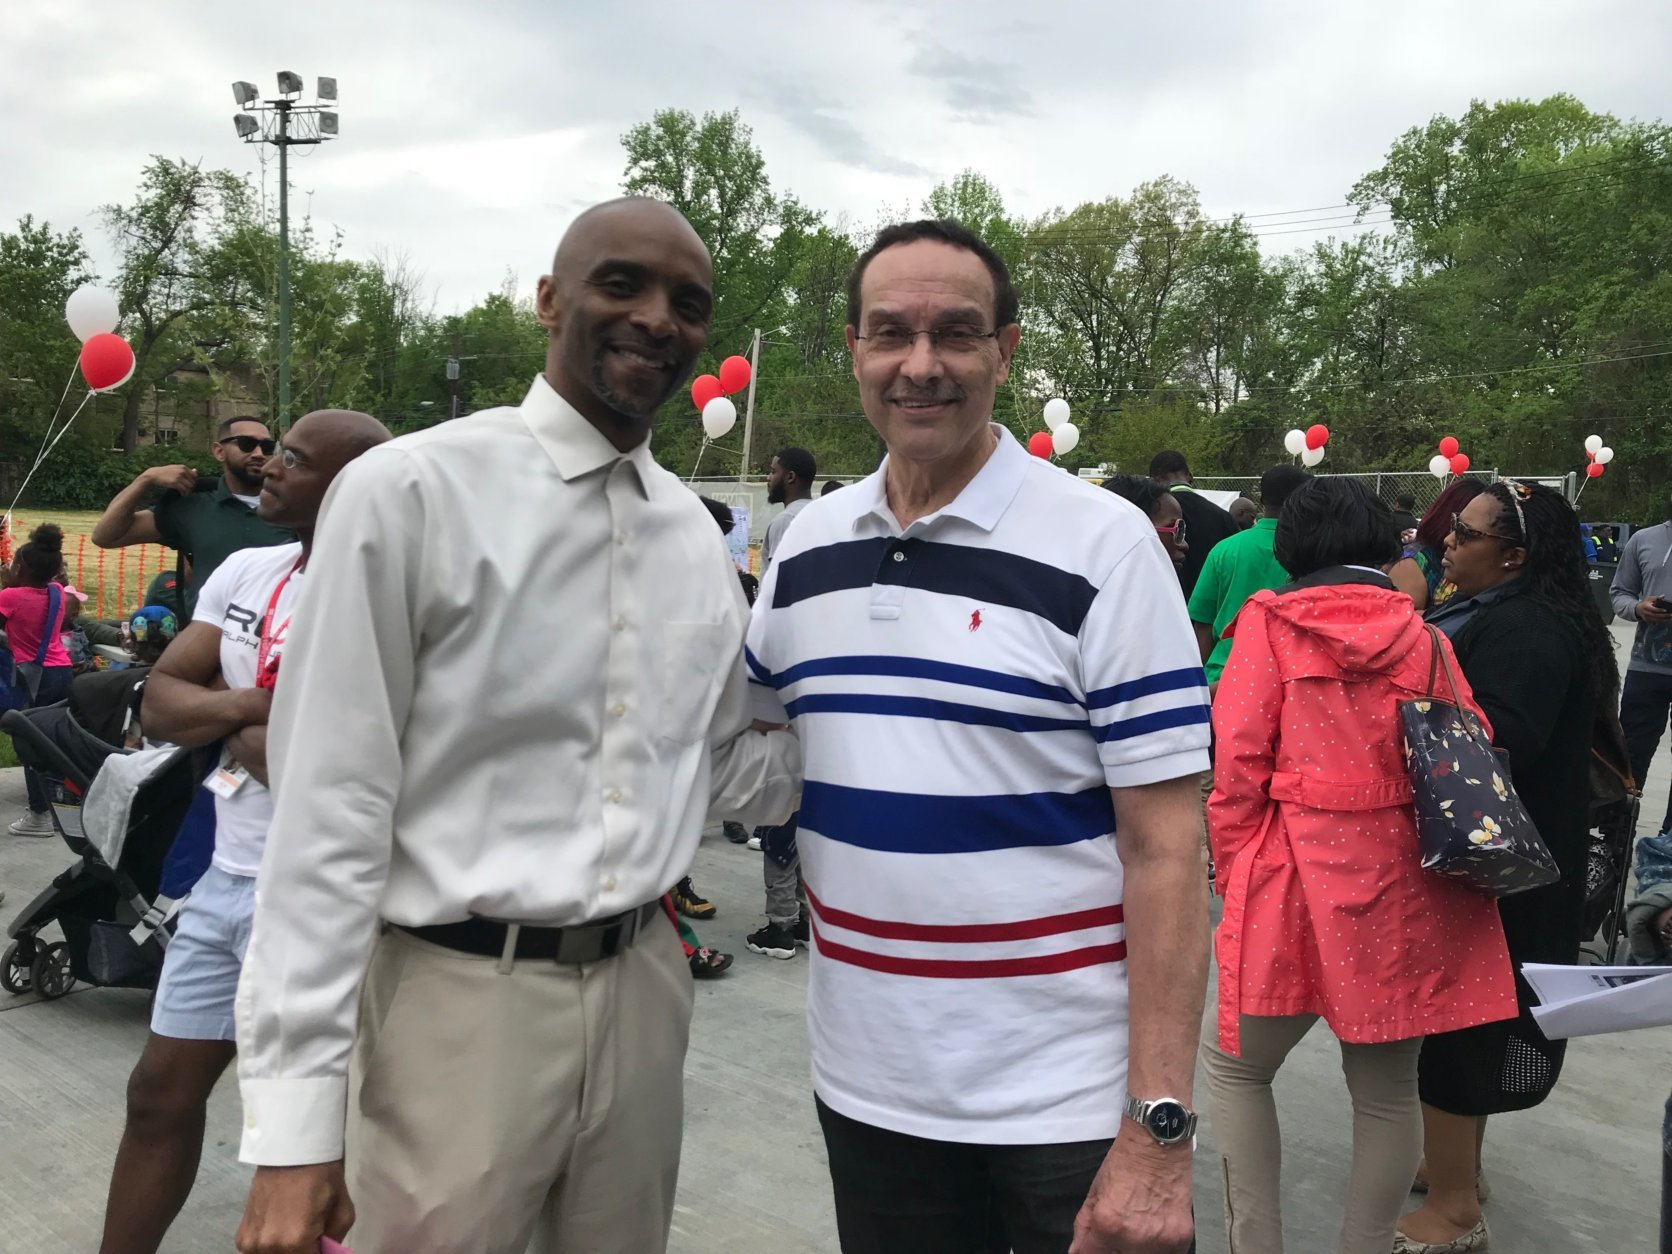 Singer Marvin Gaye's brother Antwaun Gaye, left, and Ward 7 Council member Vincent Gray, right, attend the dedication of the recreation center named in honor of the singer on Saturday, May 5, 2018 in D.C. (WTOP/Dick Uliano)